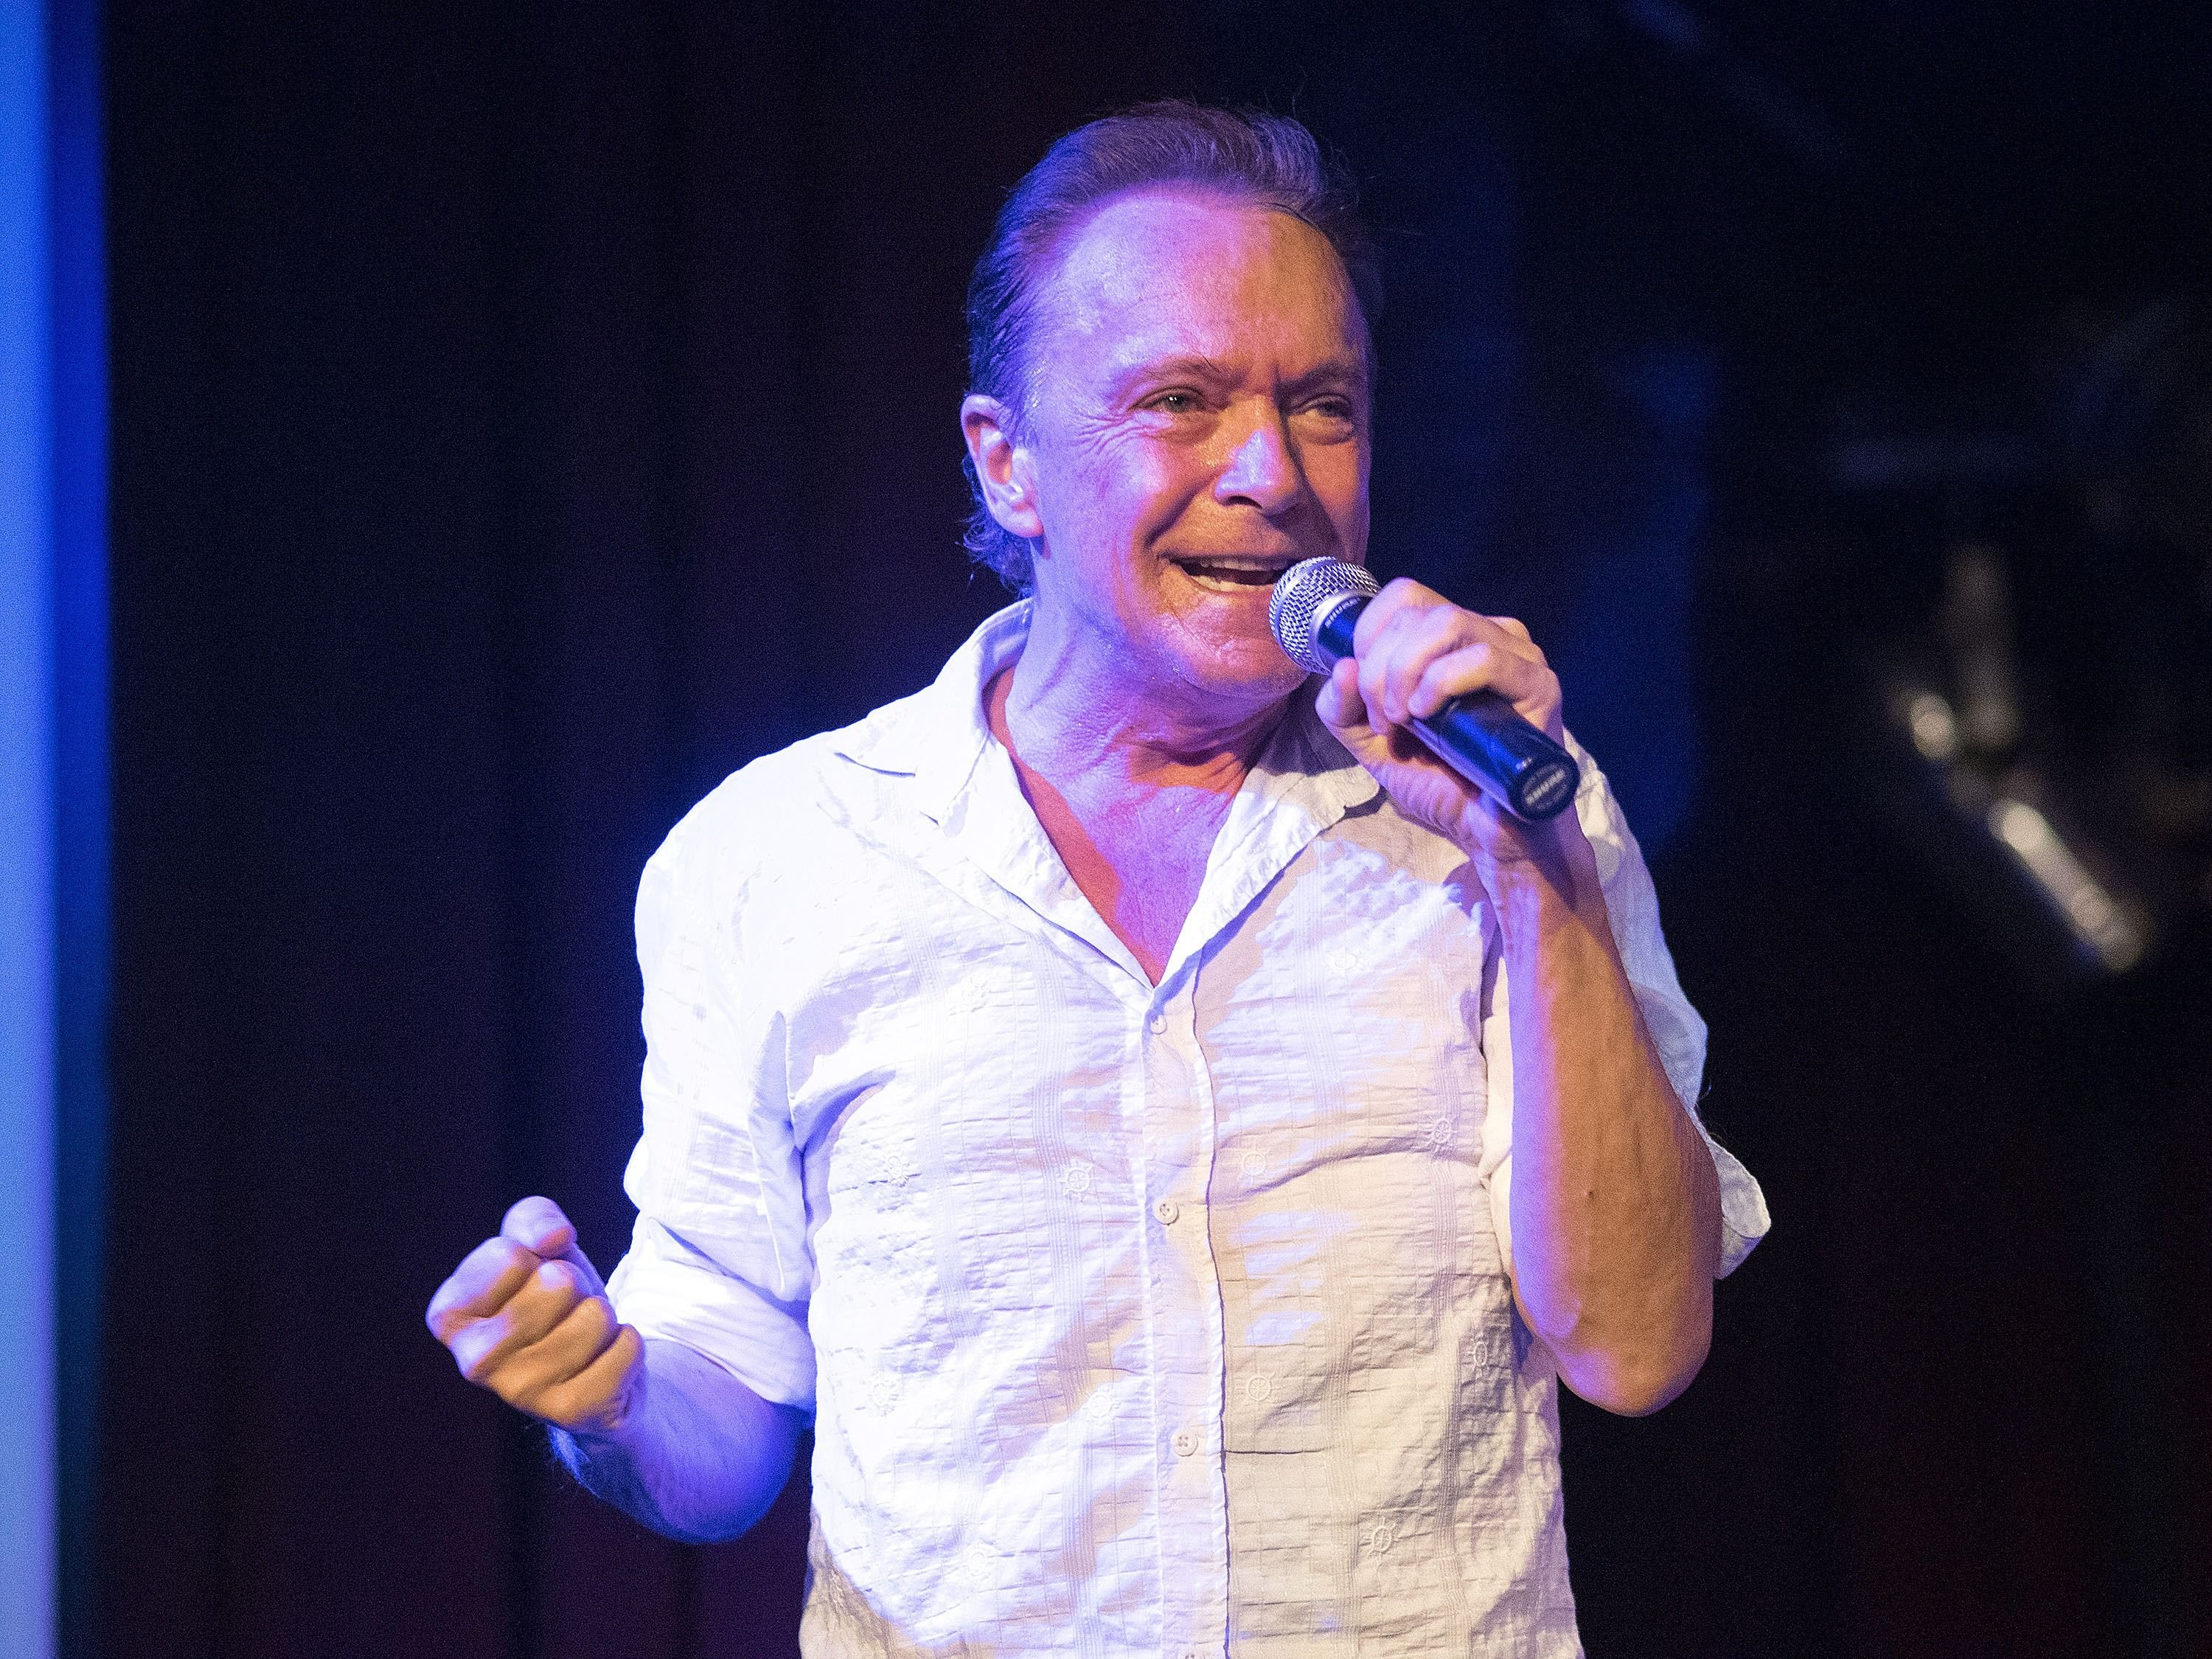 Musician David Cassidy performs at BB King on January 10, 2015 | Photo: Getty Images